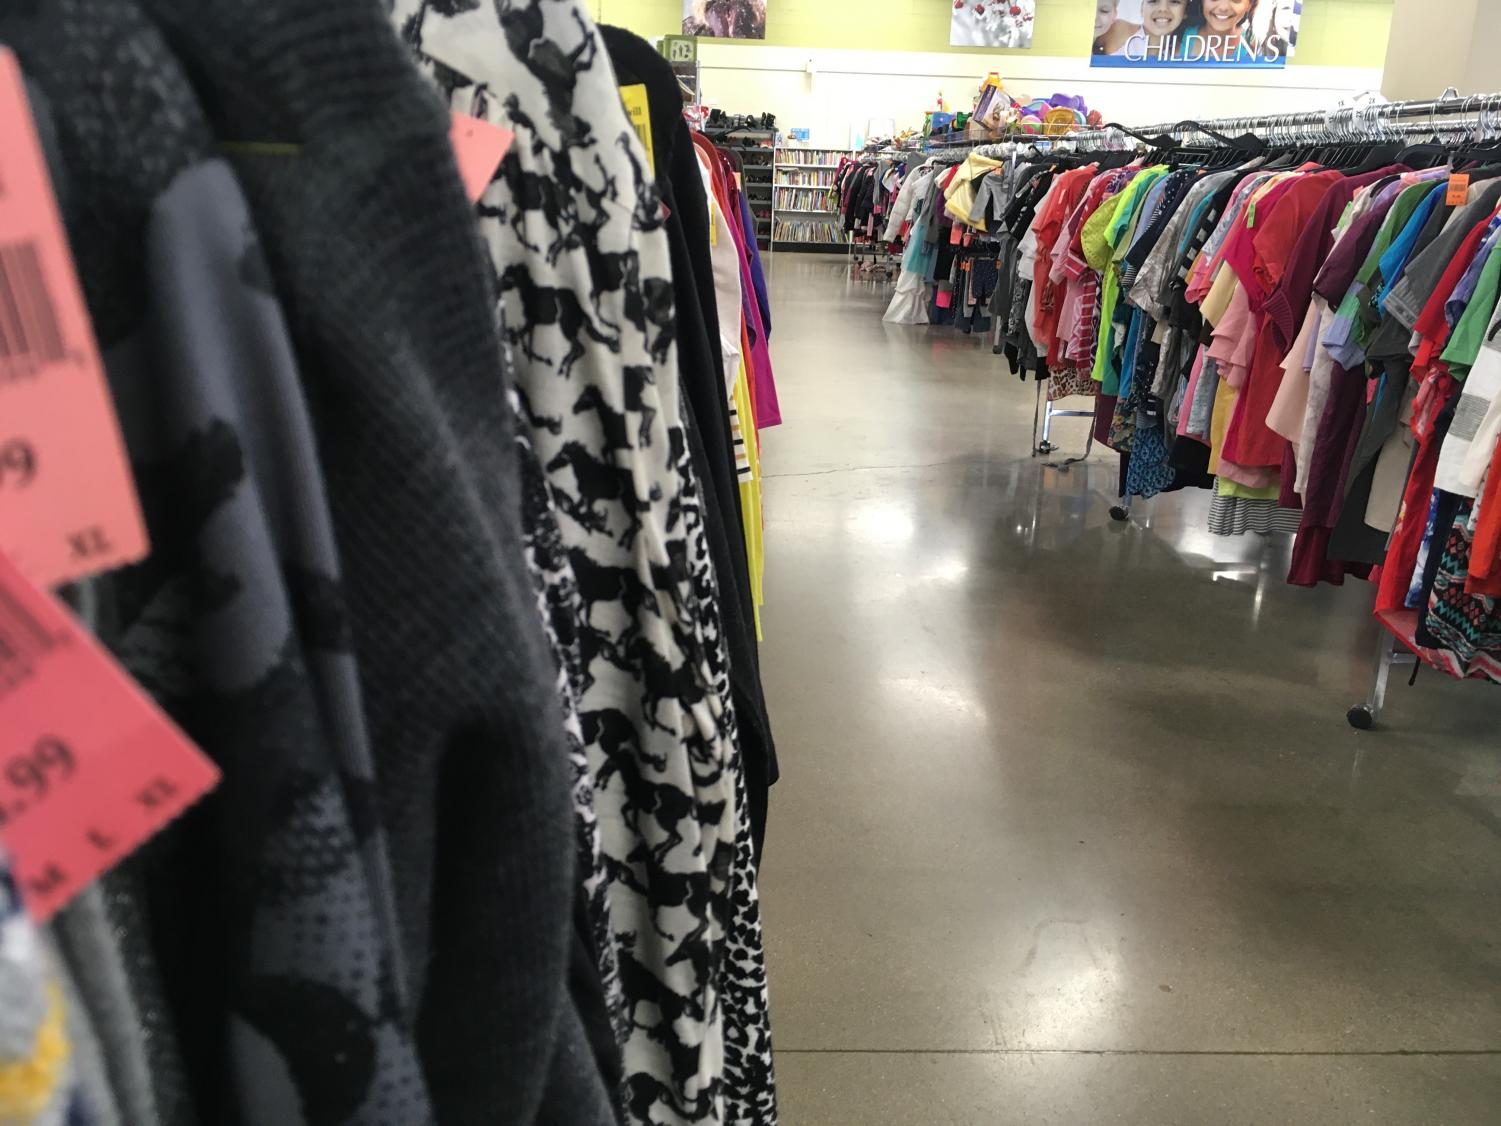 Goodwill, along with other thrift shops, have recently been raising prices. This aisle shows clothes with pink price tags.